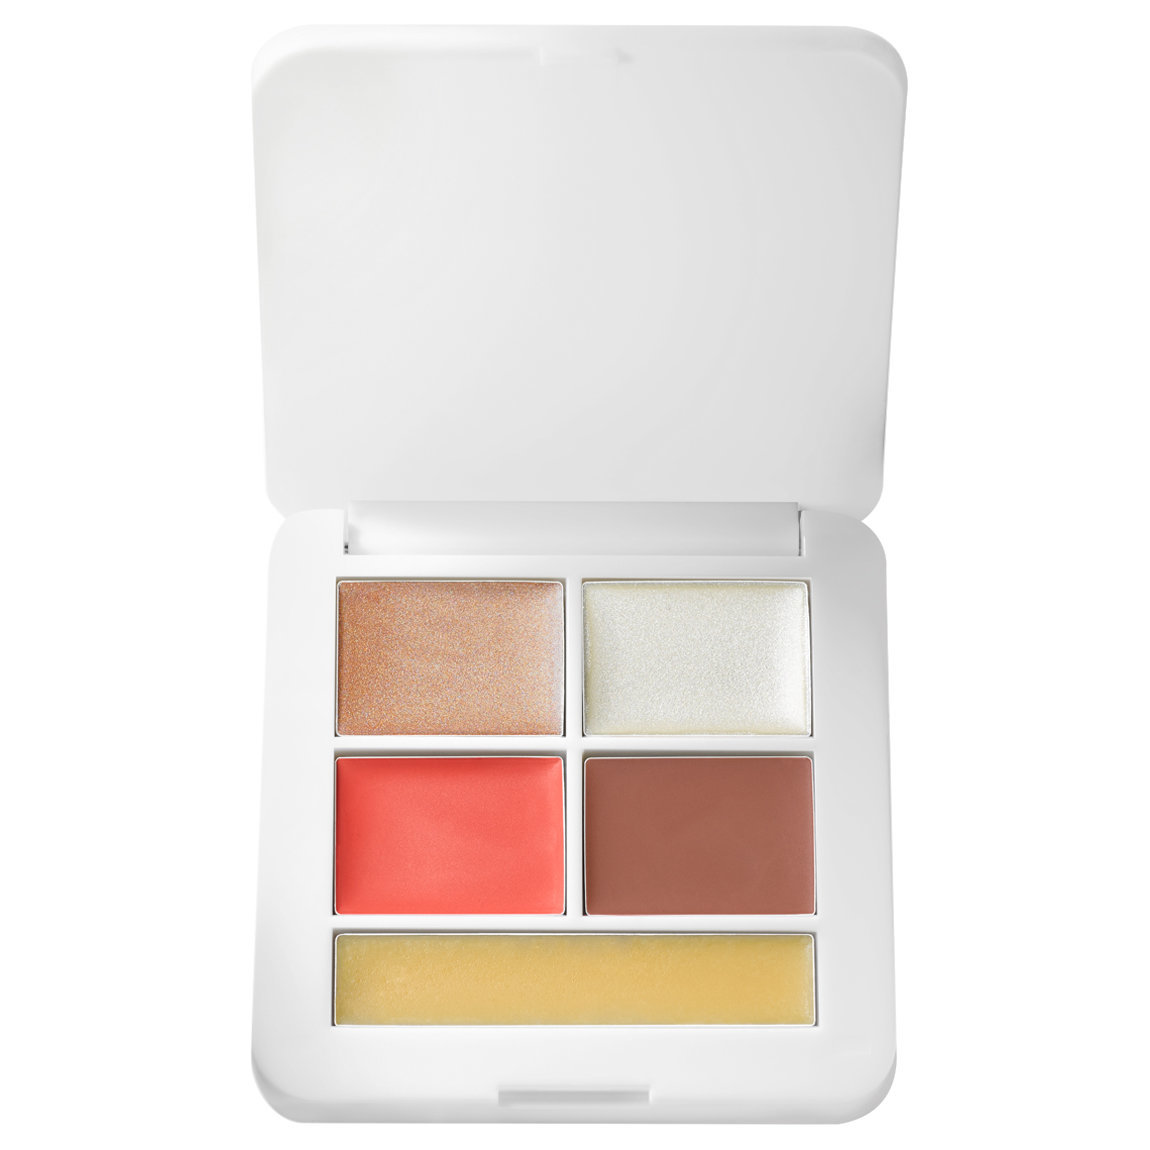 rms beauty Signature Set Mod Collection alternative view 1 - product swatch.